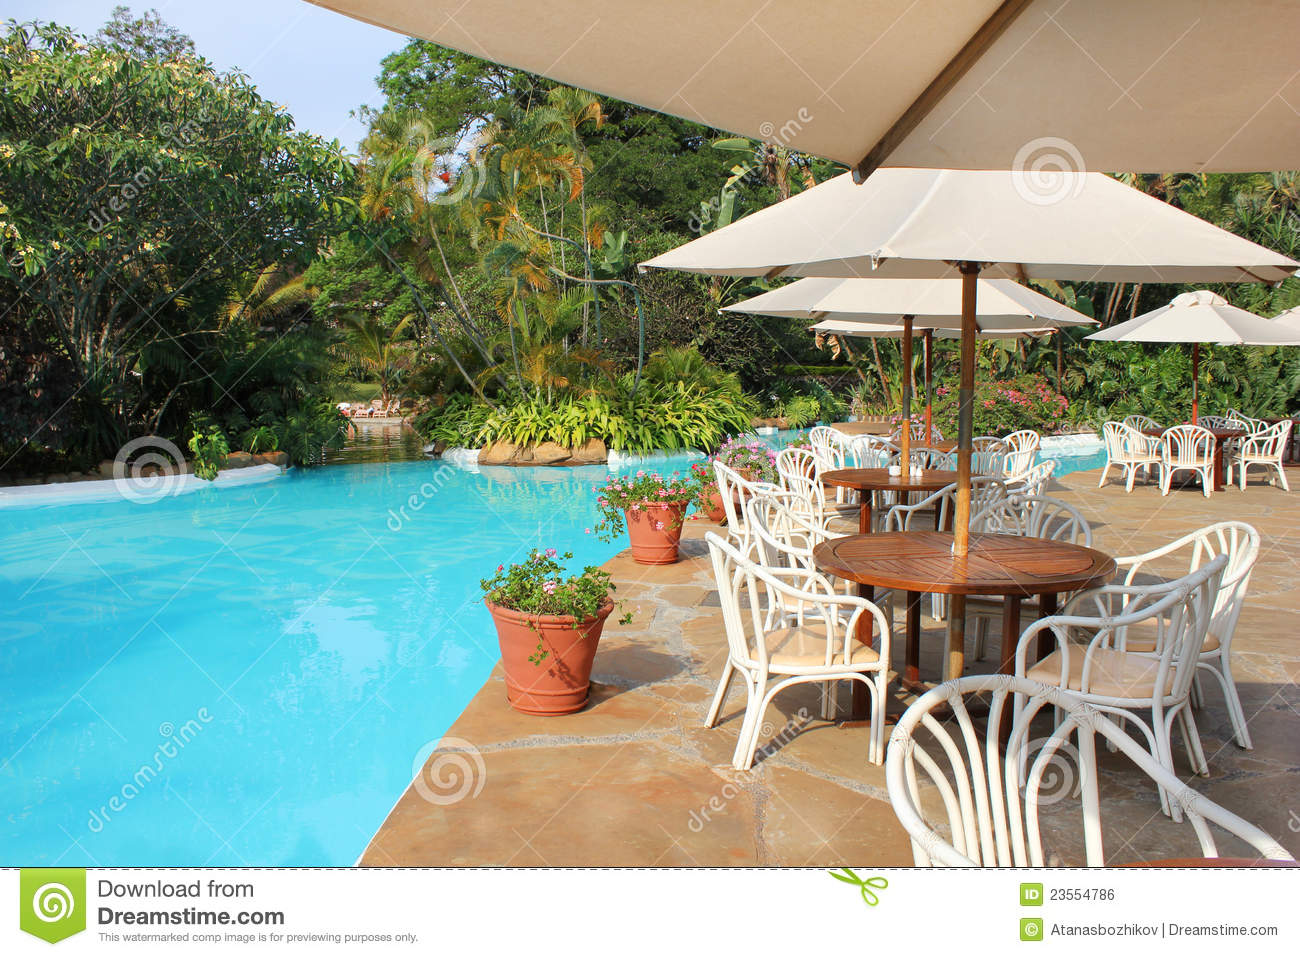 Pool restaurant in nairobi royalty free stock image for Pool garden restaurant nairobi